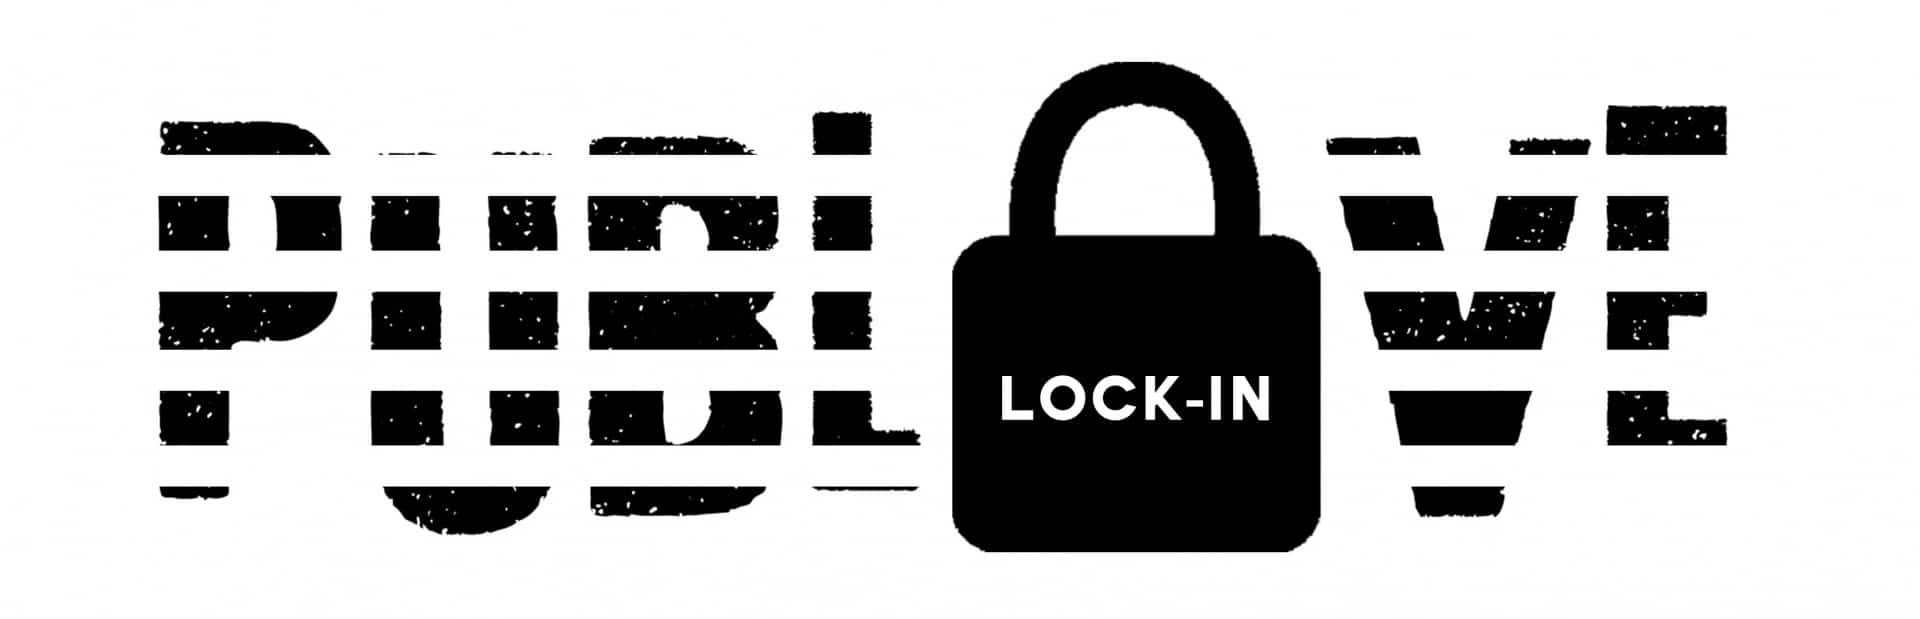 lock-in-LOGO